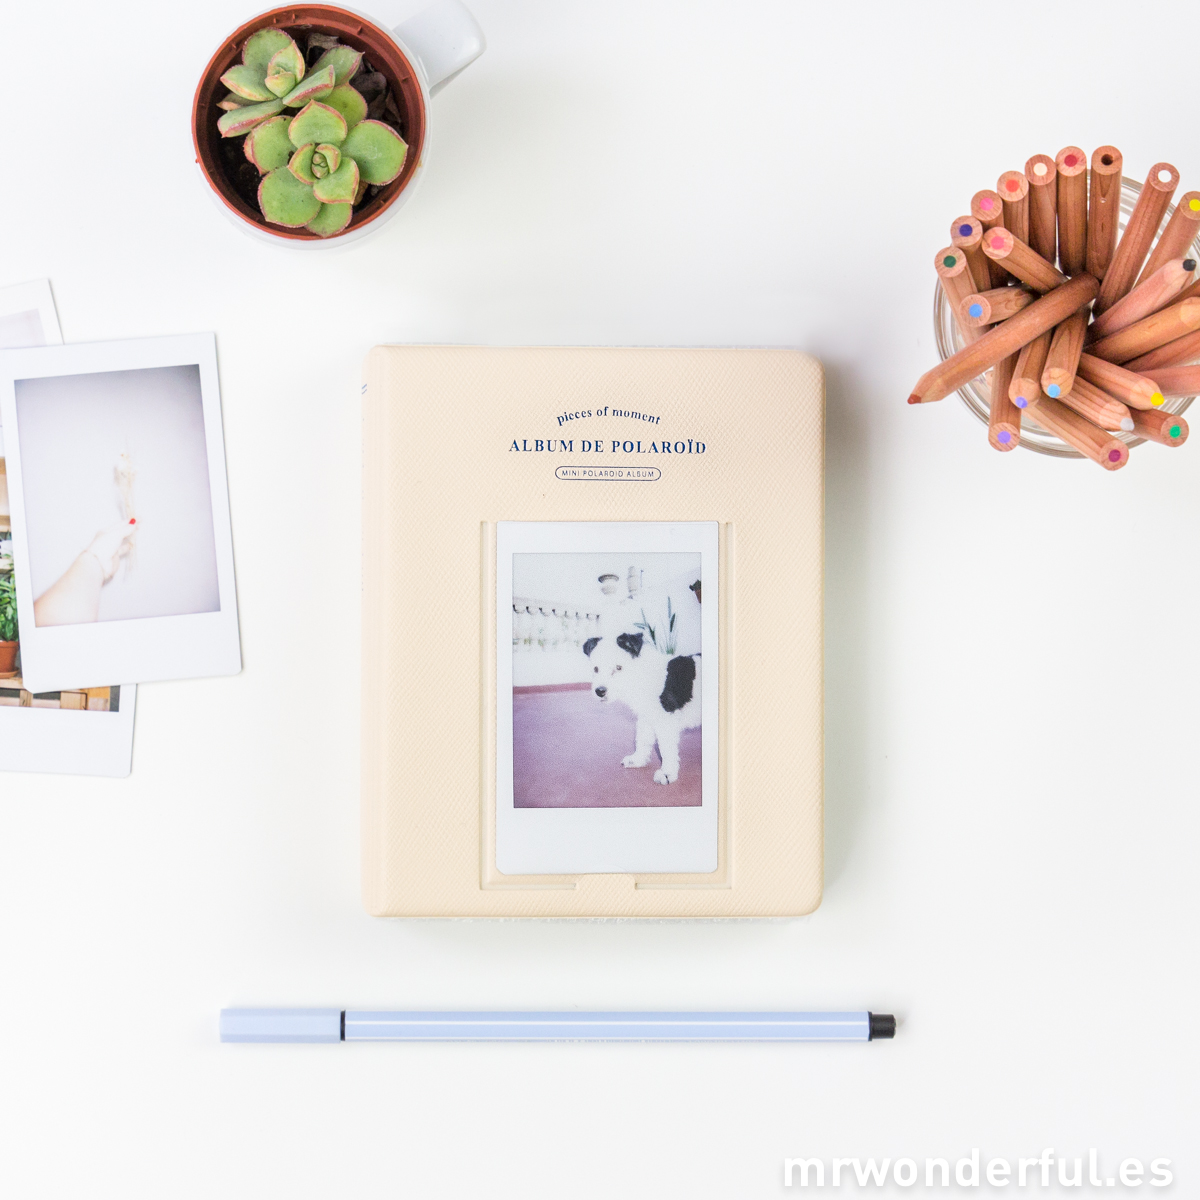 mrwonderful_7800_IVORY_album-fotos-polaroid-mini-beige-1-Editar